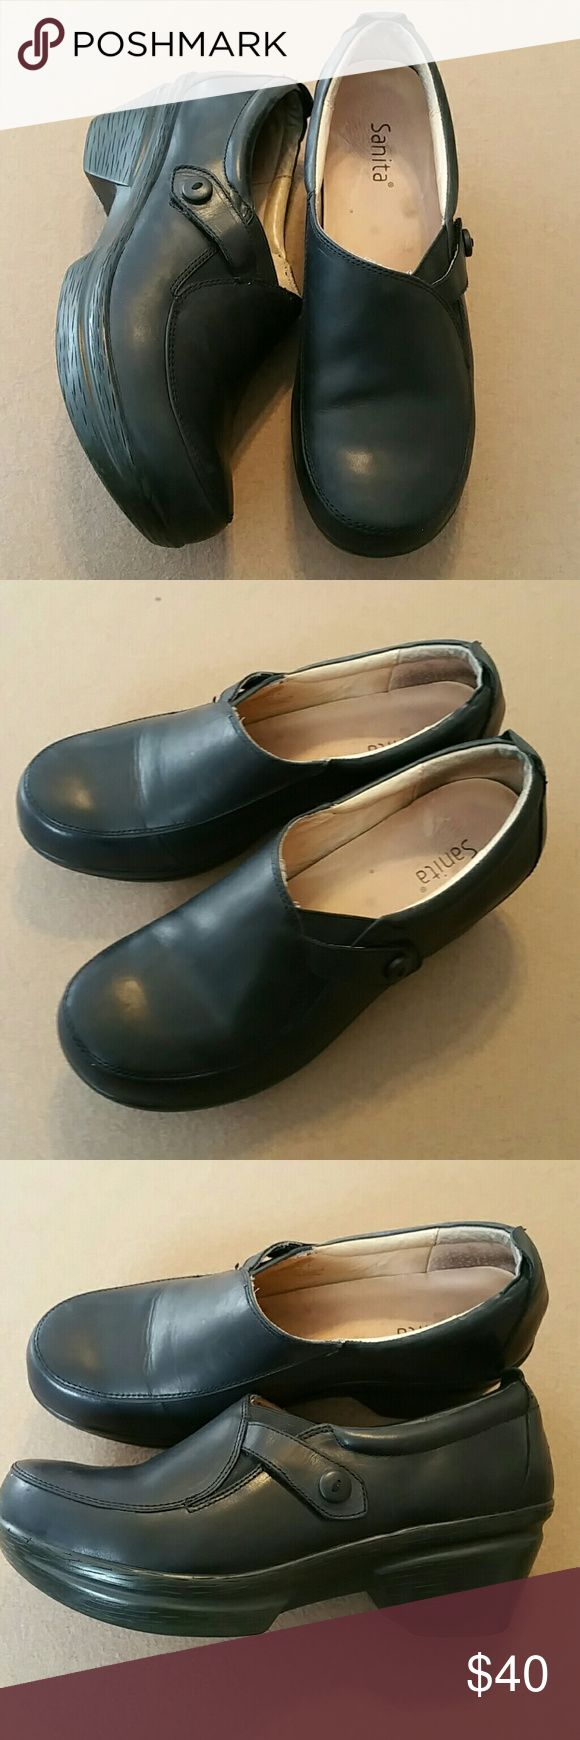 Dansko black leather clogs made by Sanita Sz 41 Dansko clogs made by the Sanita company. Black with a side strap and decorative button over a stretchy elastic expander for easy on and off. These clogs are identical to Danskos. Sanita made them for Dansko up until recently. Excellent pre owned condition. Size 41. No flaws to note. Sanita Shoes Mules & Clogs